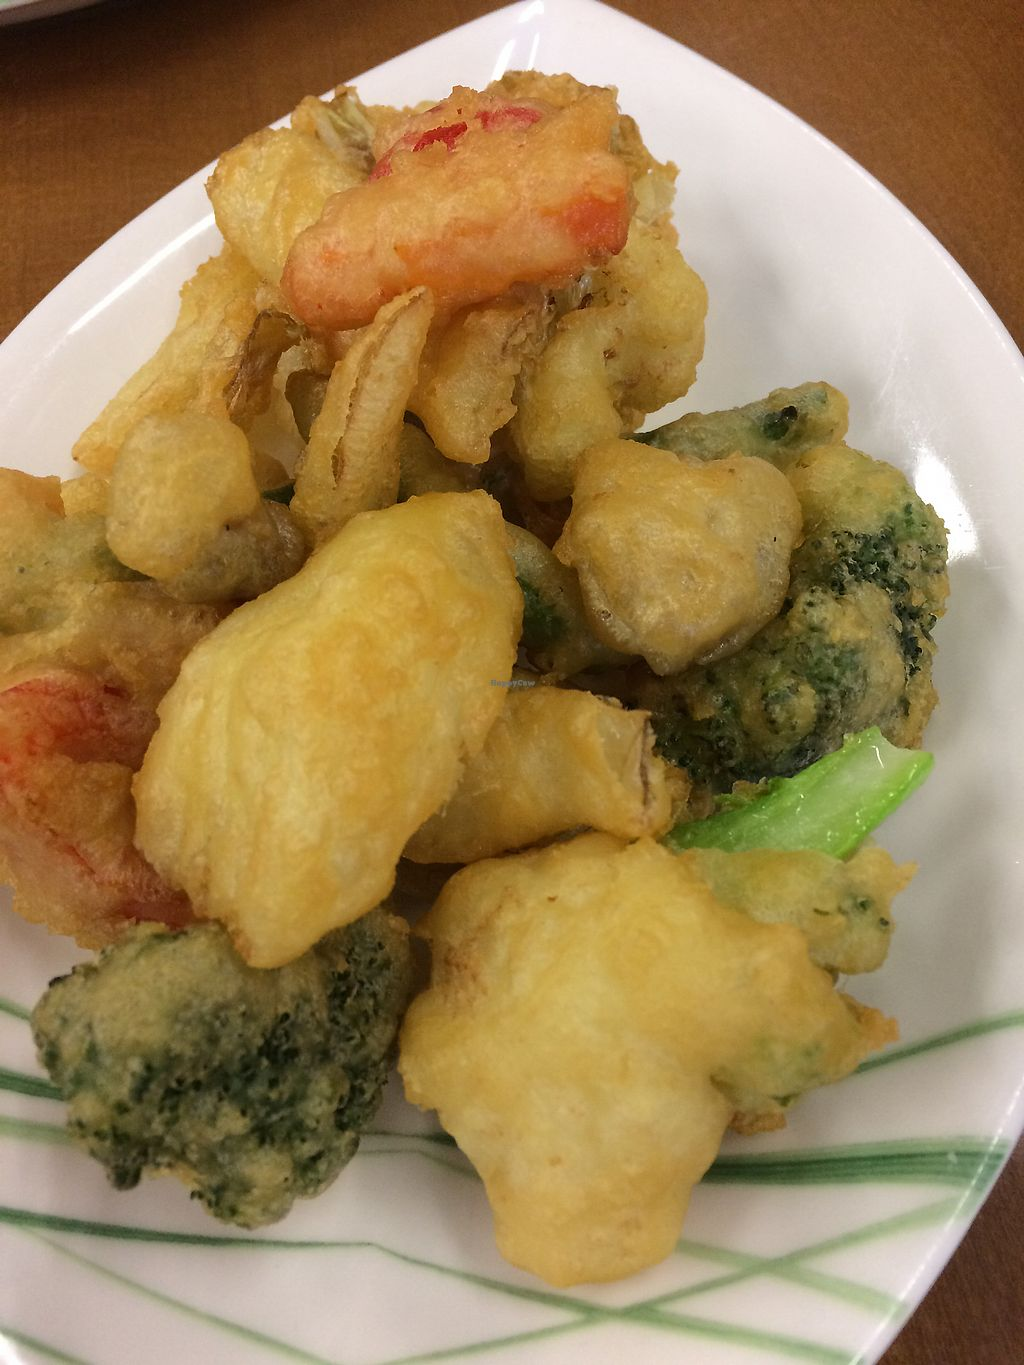 "Photo of Bo Tree Kitchen  by <a href=""/members/profile/CiaraSlevin"">CiaraSlevin</a> <br/>Vegetable Tempura  <br/> April 11, 2018  - <a href='/contact/abuse/image/117389/383662'>Report</a>"